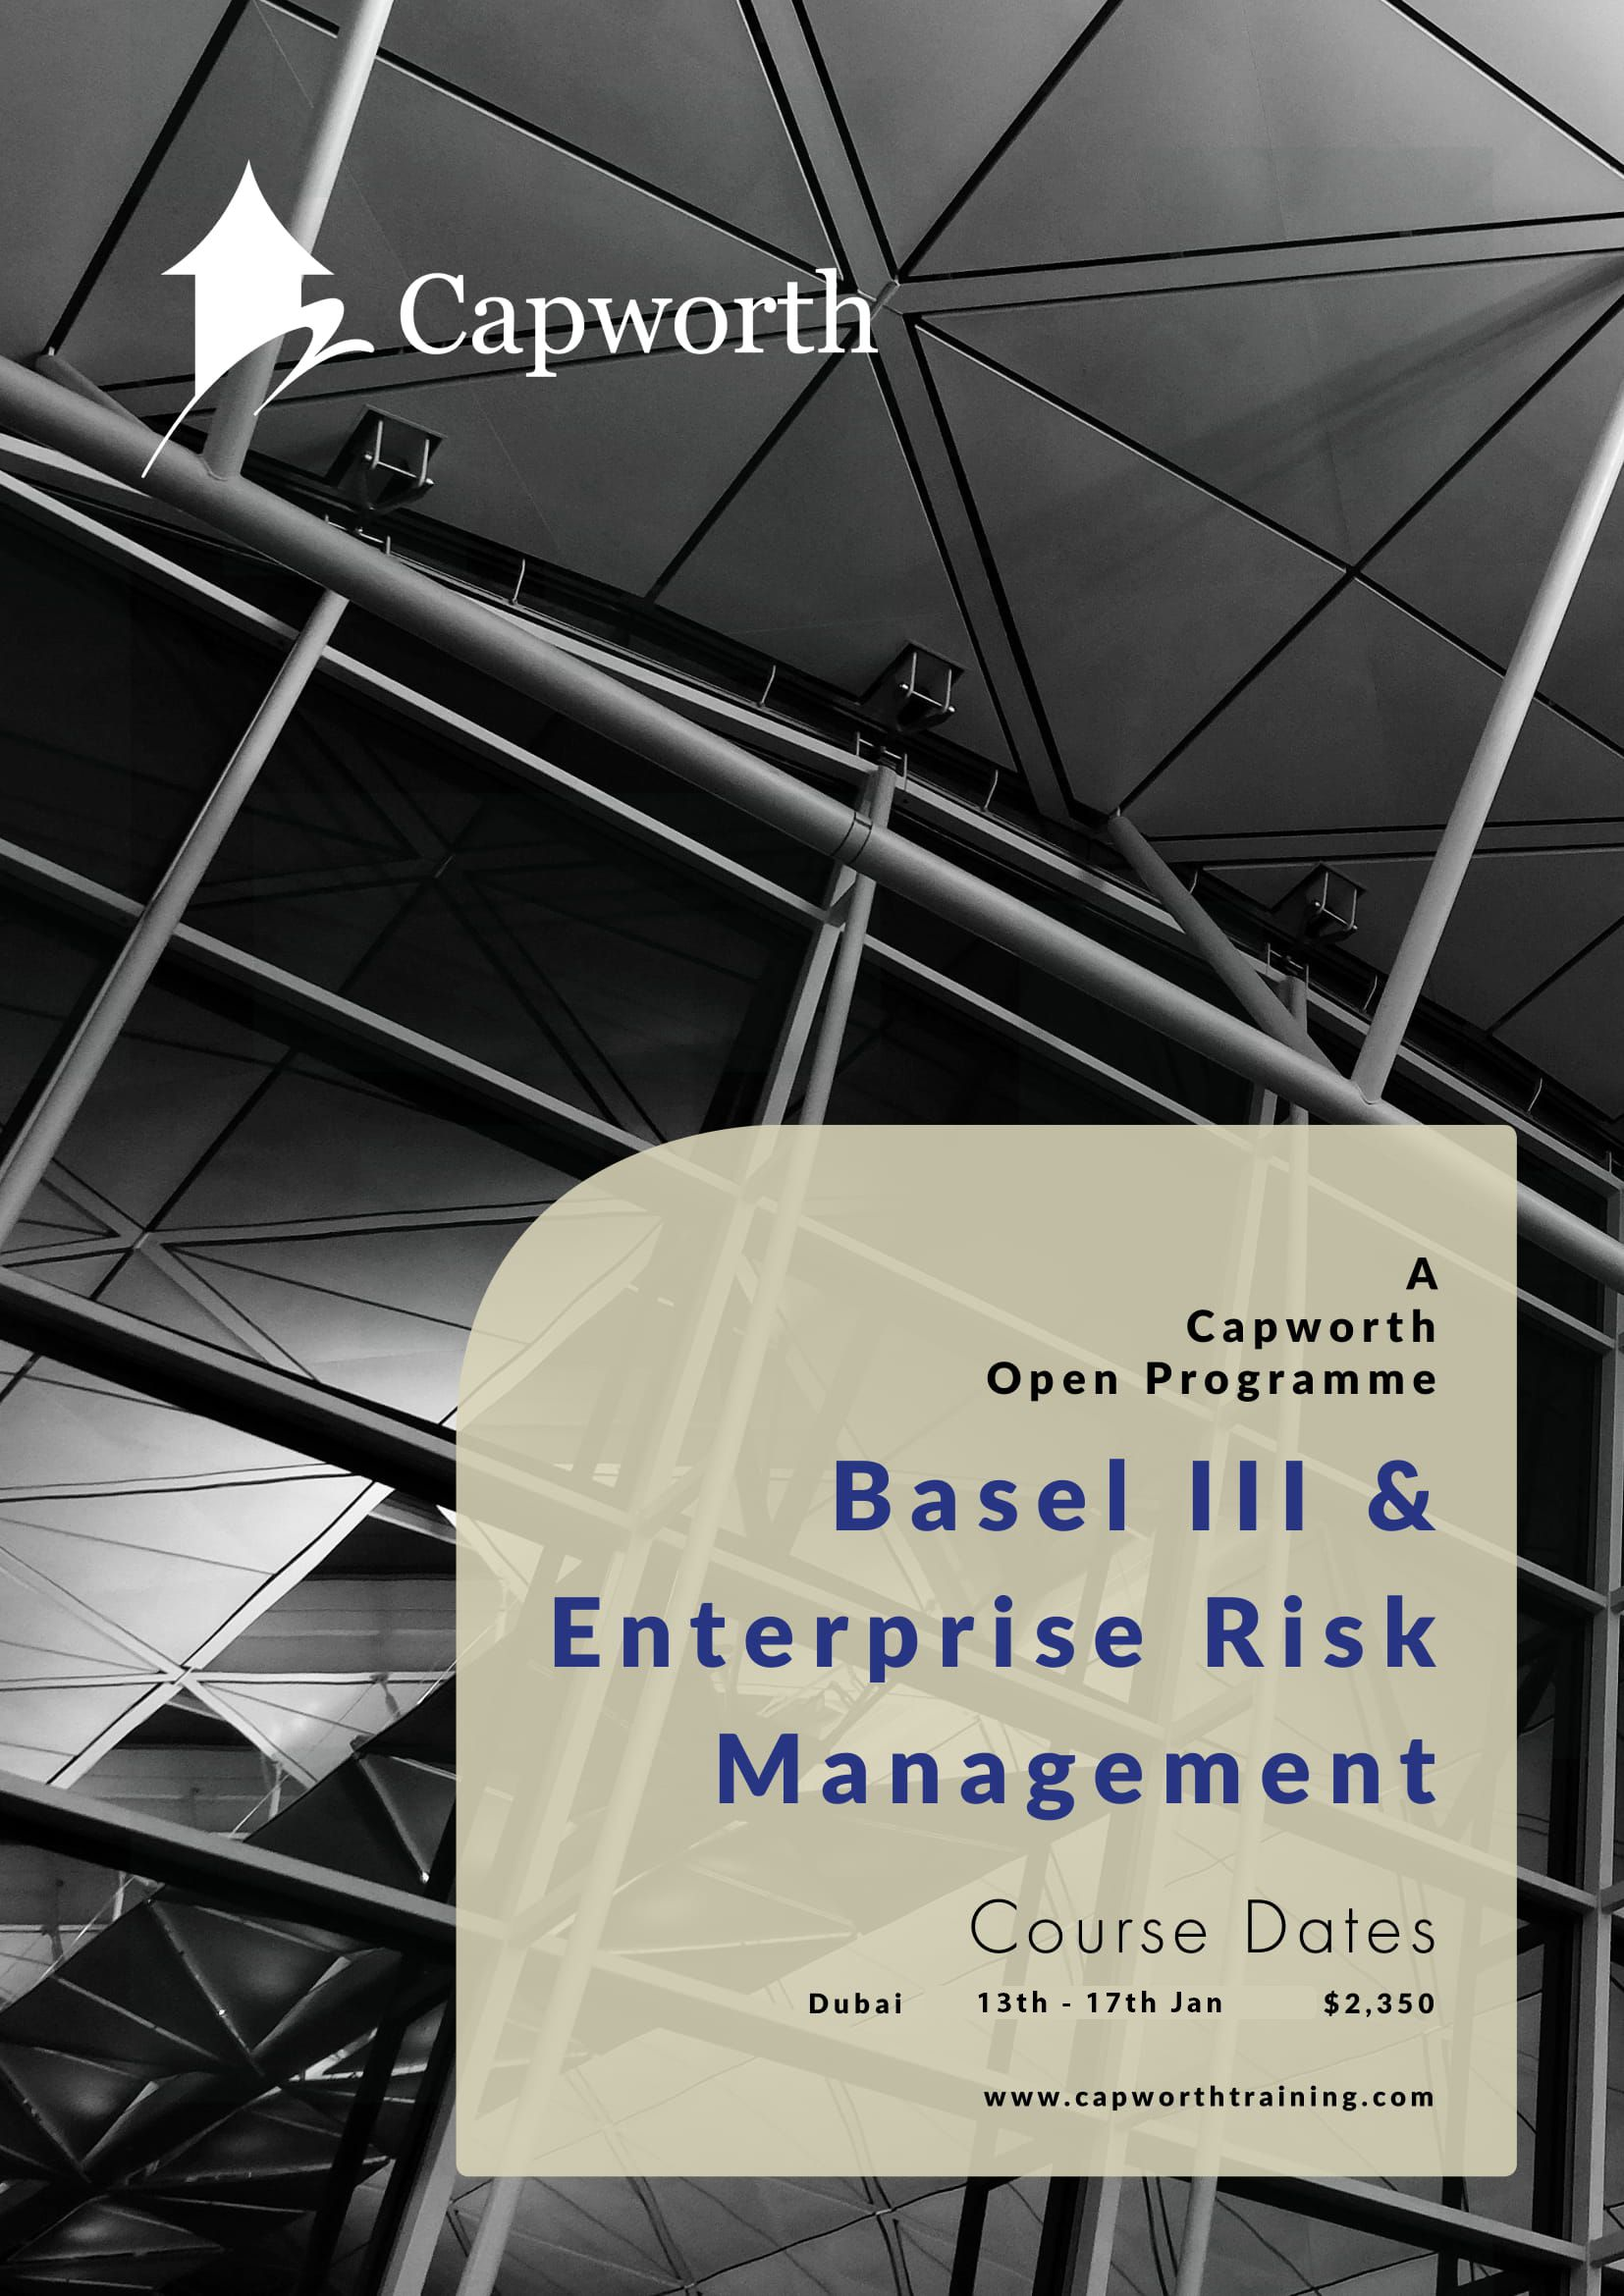 Basel III and Enterprise Risk Management - Dubai - Jan 2010 - Open Course _Page_1.jpg